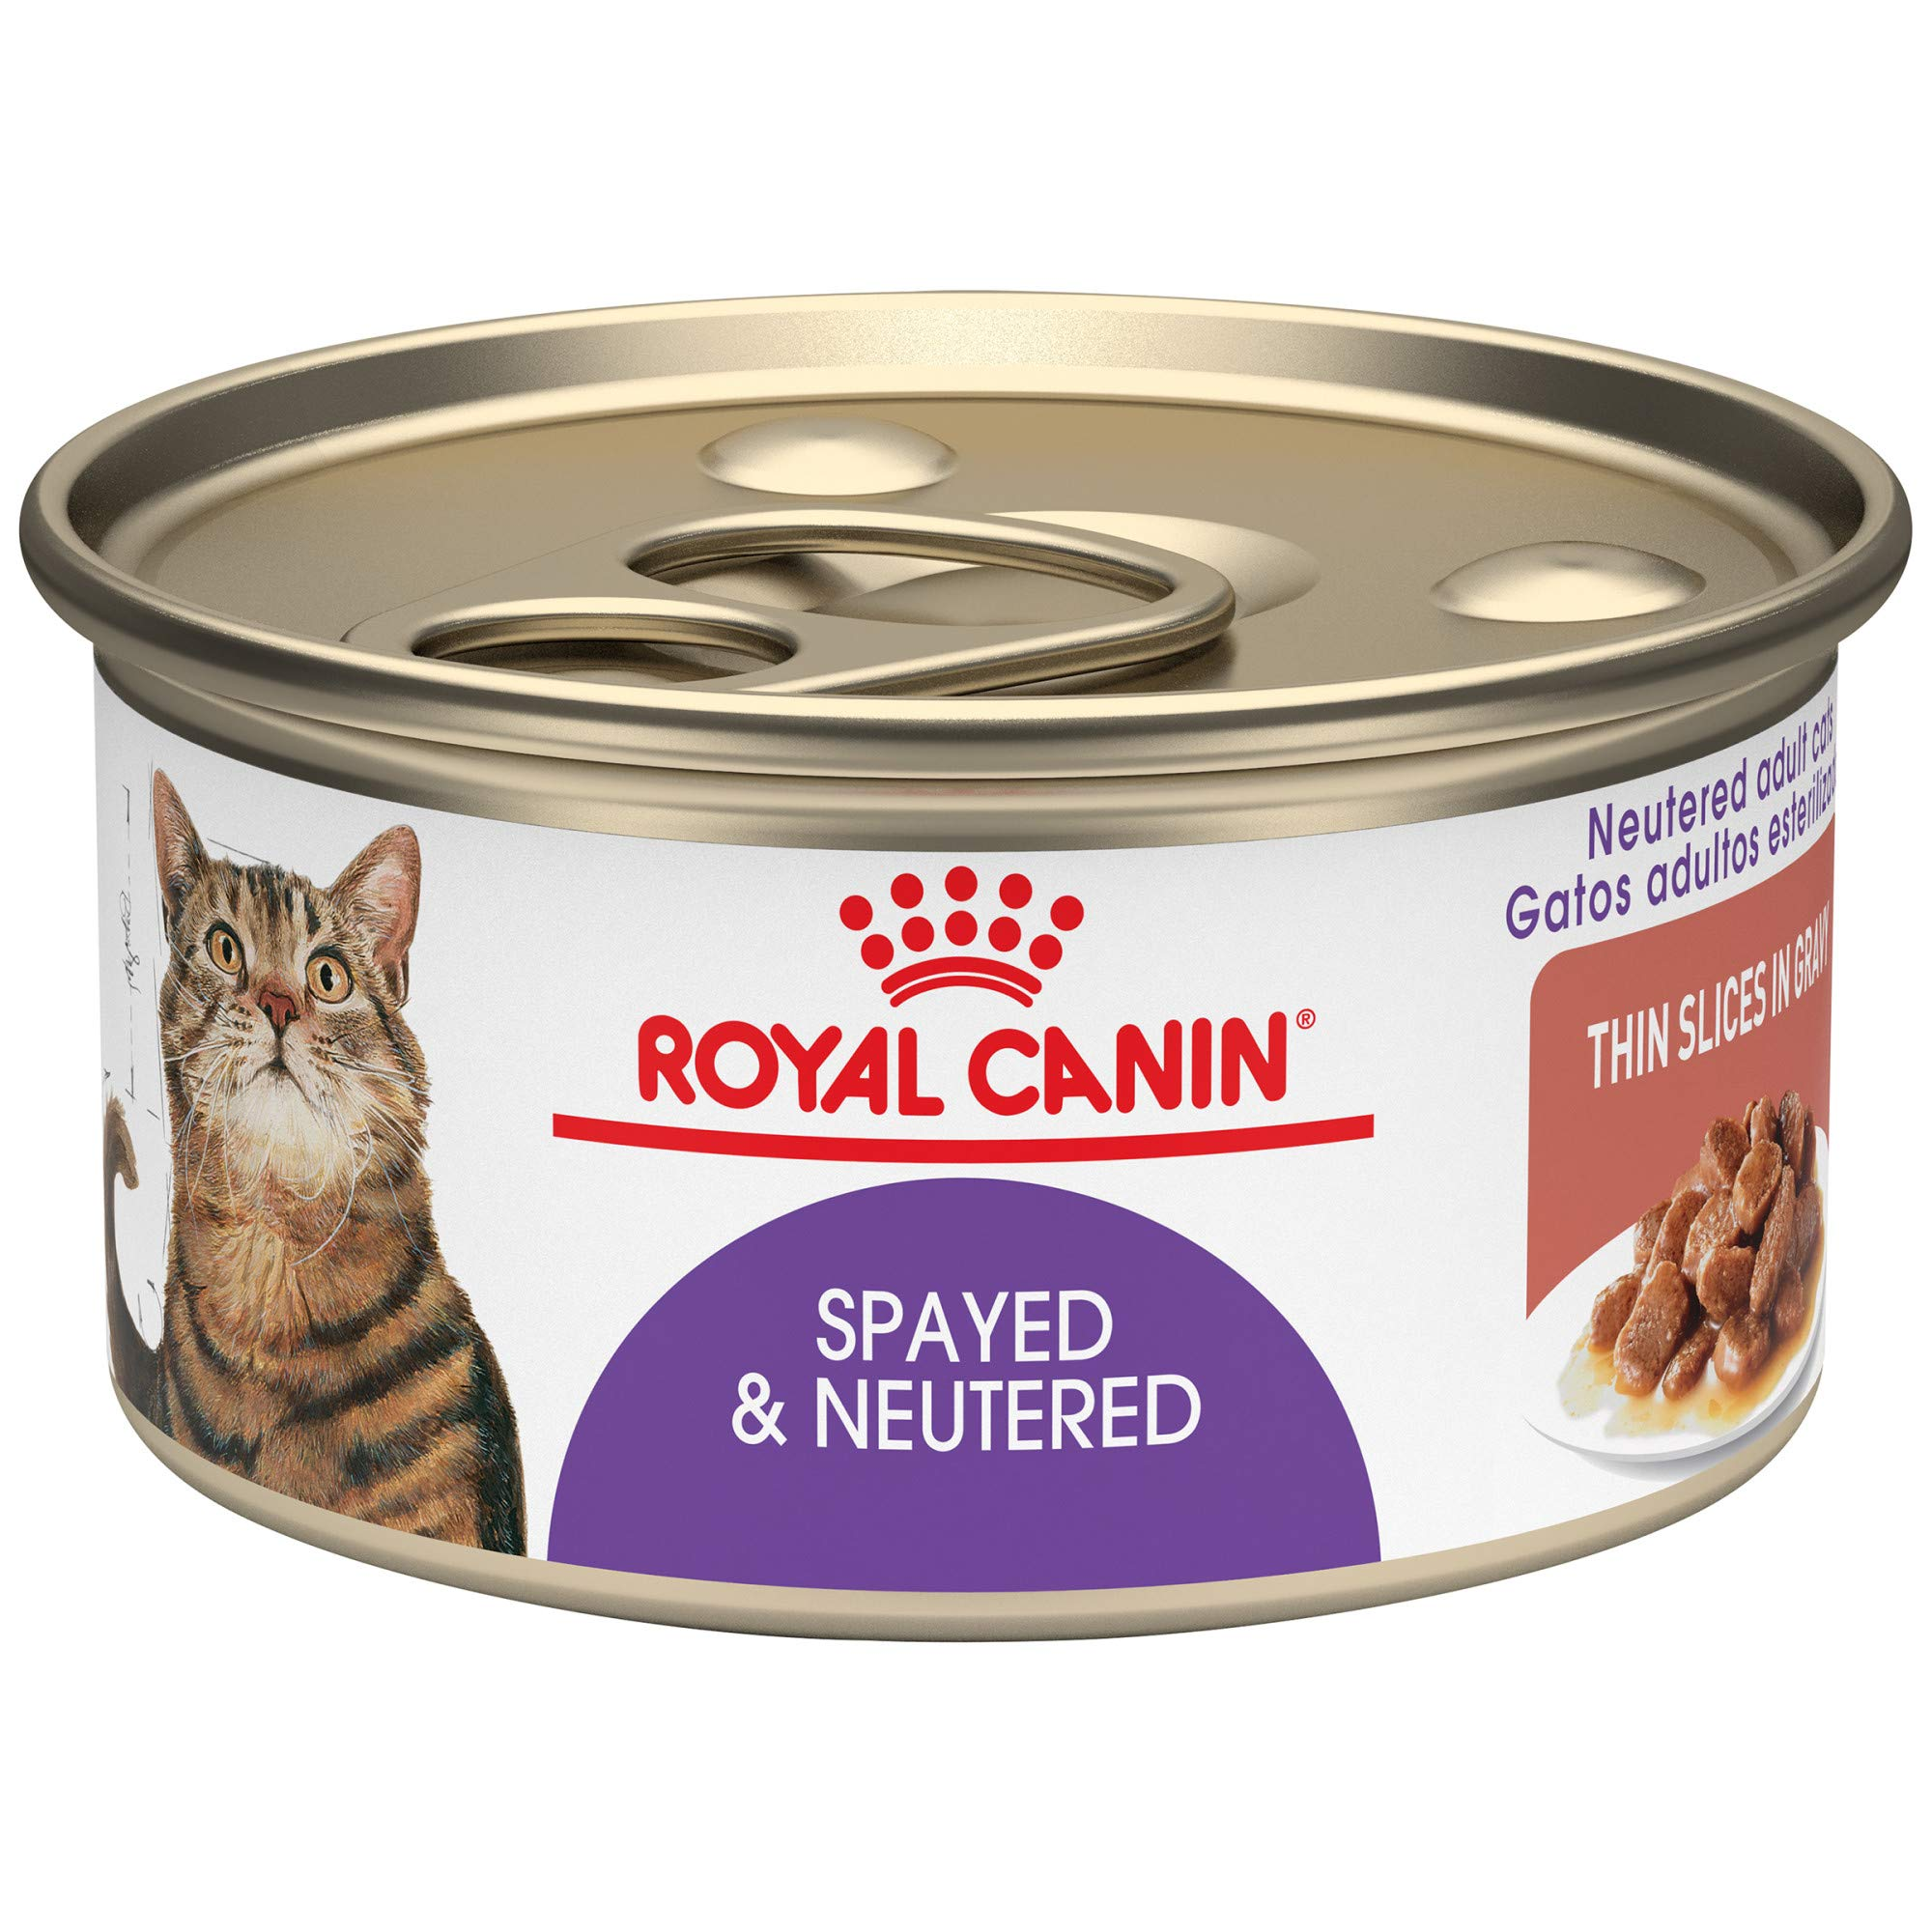 Royal Canin Spayed/Neutered Thin Slices in Gravy Wet Cat Food, 3 oz. can by Royal Canin